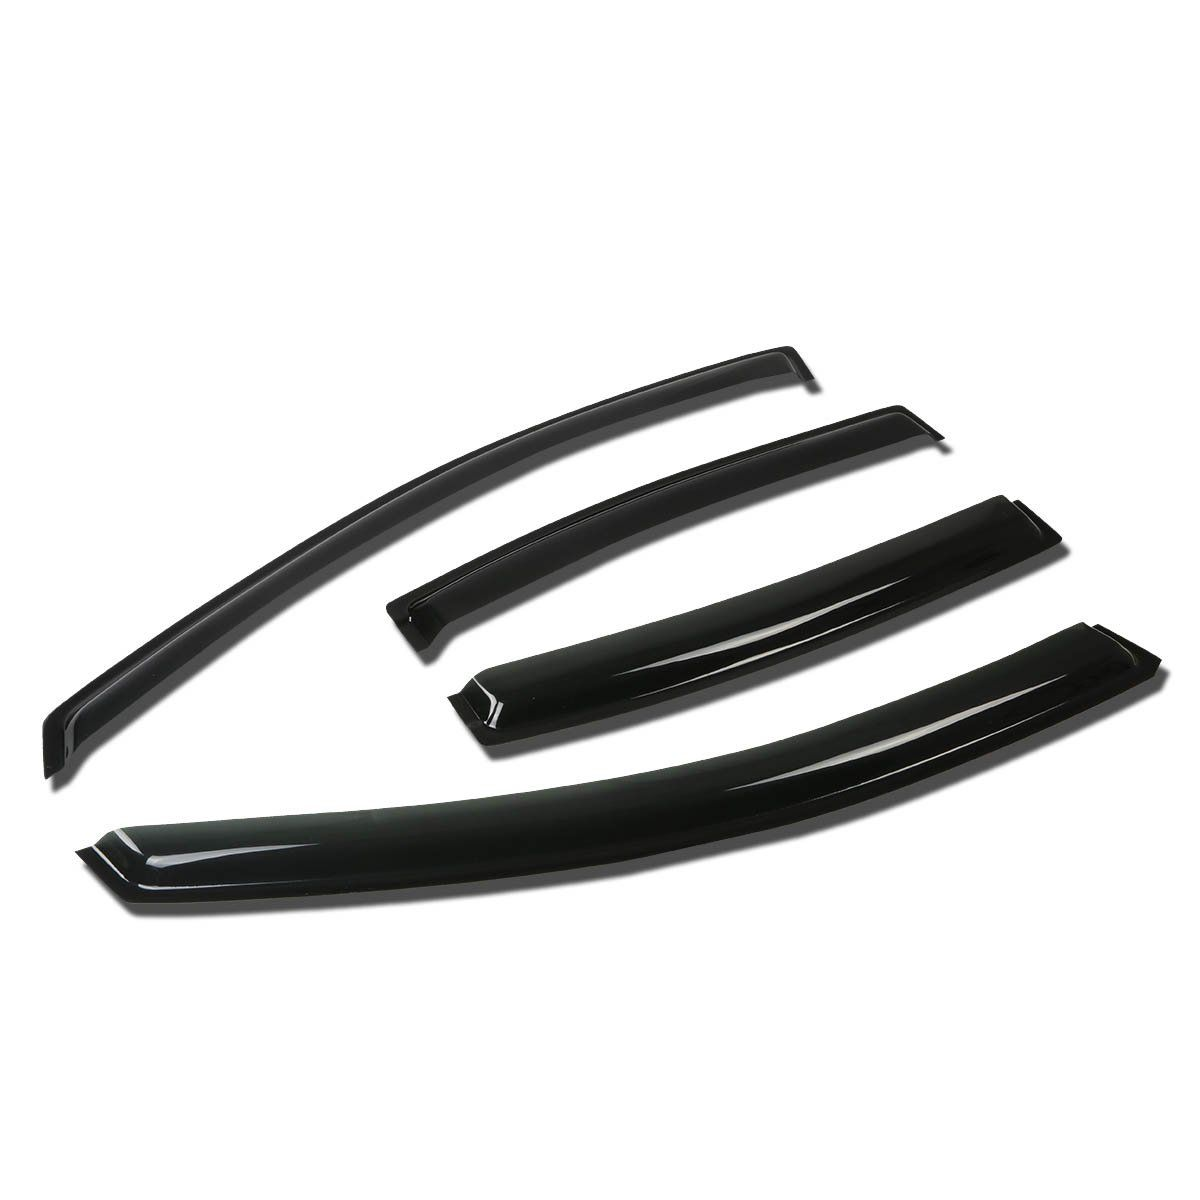 Dna Motoring Wvs 154 Window Vent Visor Deflector Rain Guard Dark Smoke 4 Piece More Info Could Be Found At The Image In 2020 With Images Sun Roof Dark Smoke Window Vents